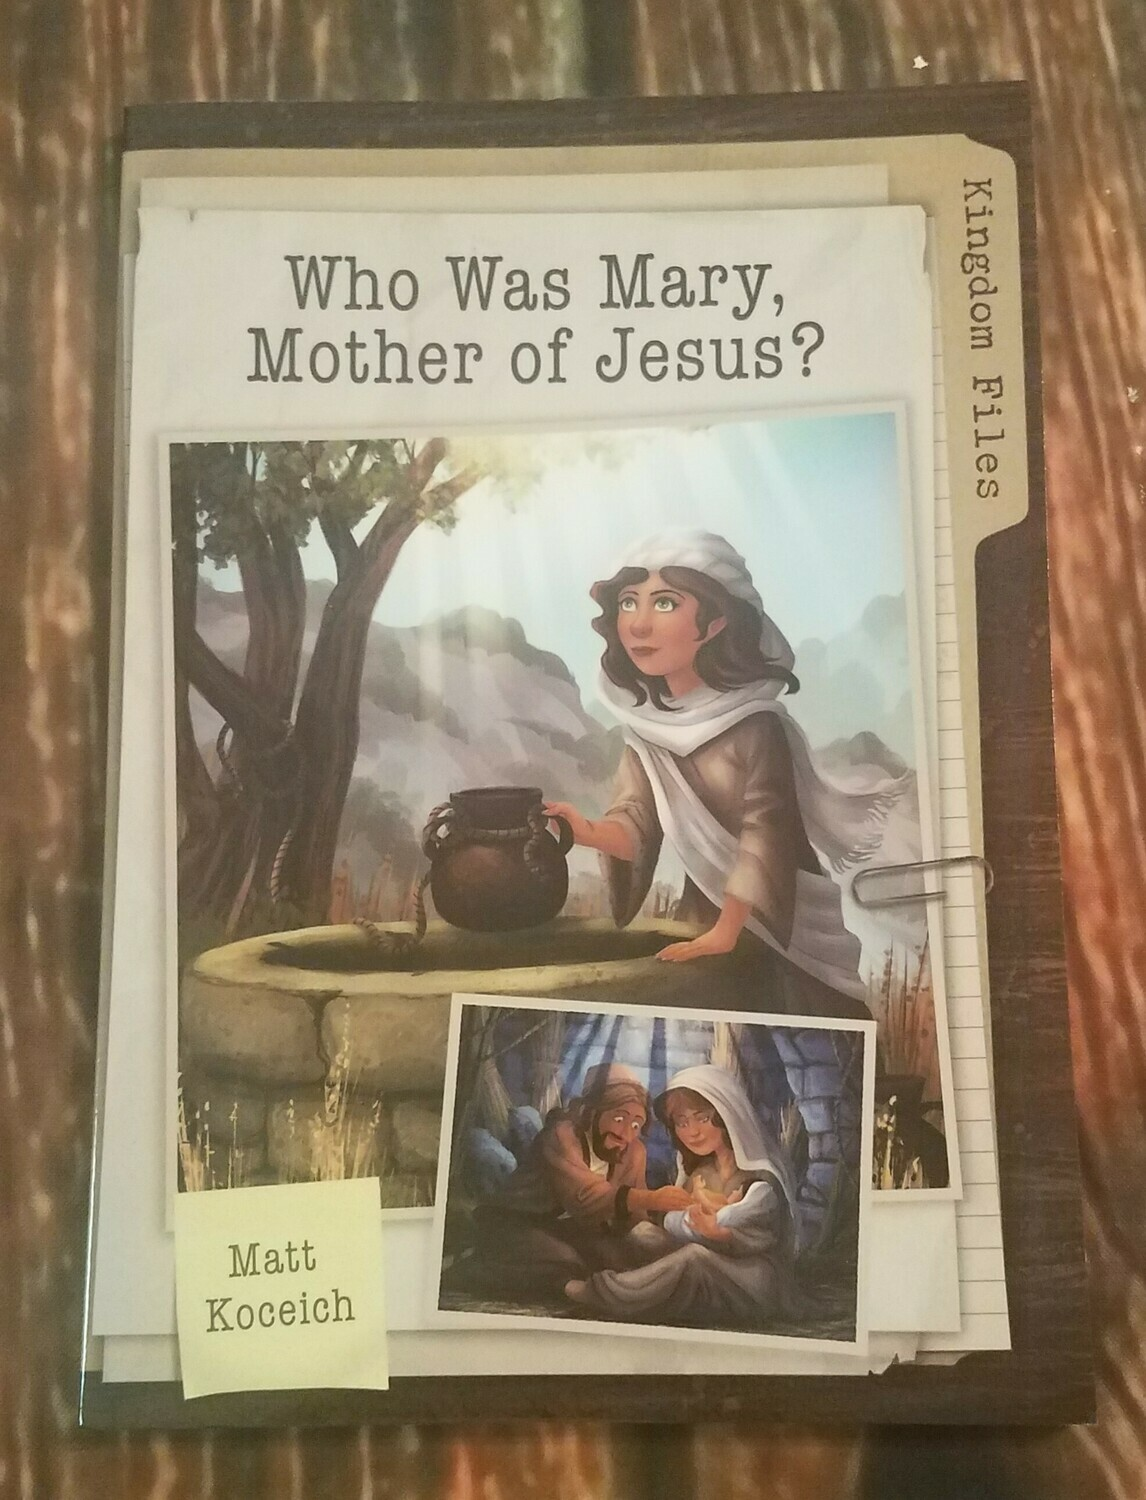 Kingdom Files: Who Was Mary, Mother of Jesus? by Matt Koceich